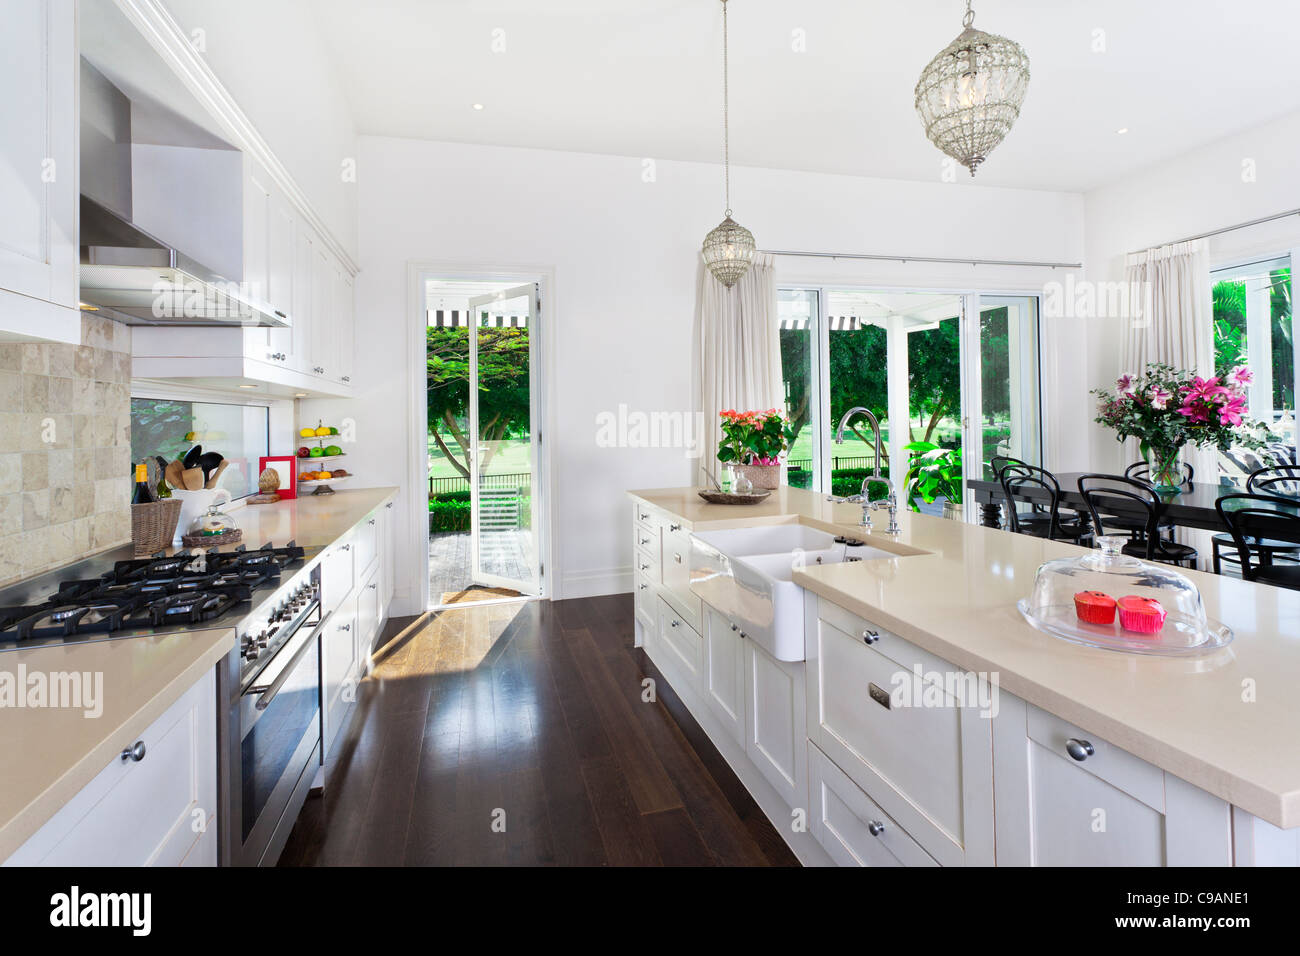 Stylish open plan kitchen with stainless steel appliances and dining ...